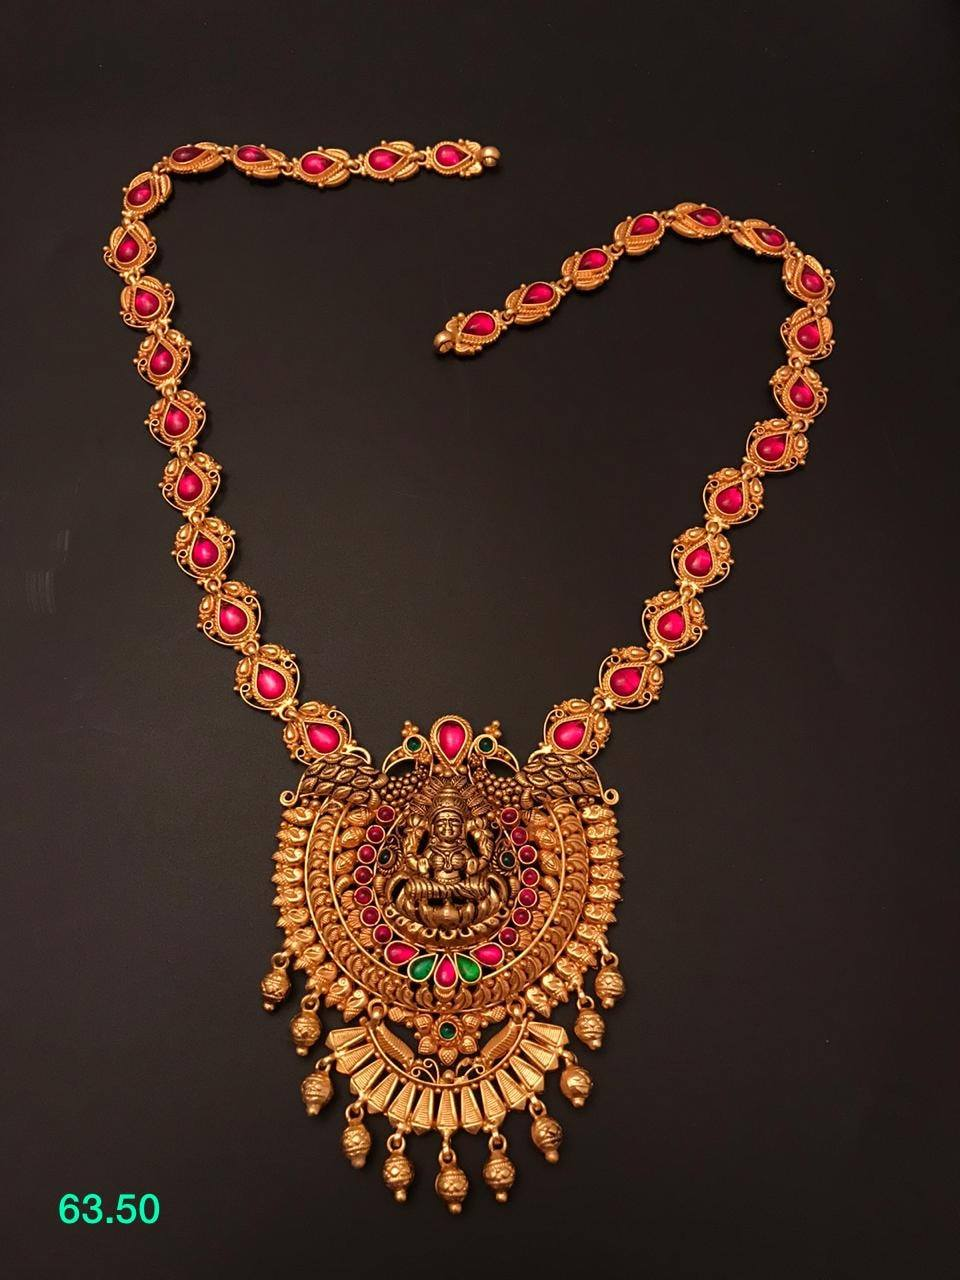 One gram gold necklace with Lakshmi ji pendant.  1 gram gold necklace online matte finish 1 gram gold jewellery 1 gram gold forming jewellery